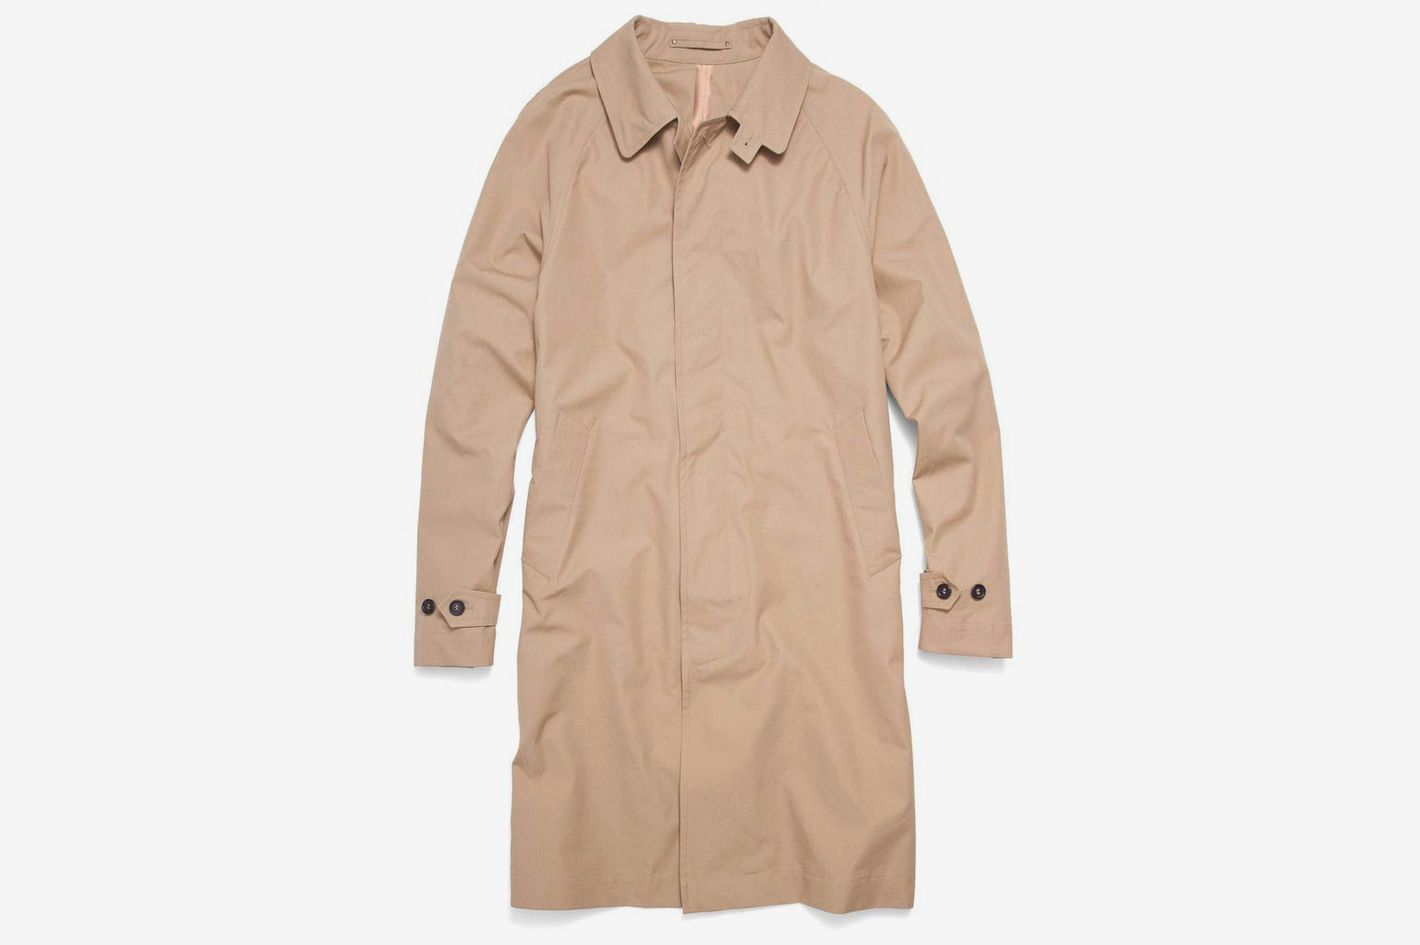 3d2e85080 Todd Snyder + Private White V.C. Khaki Trench Coat